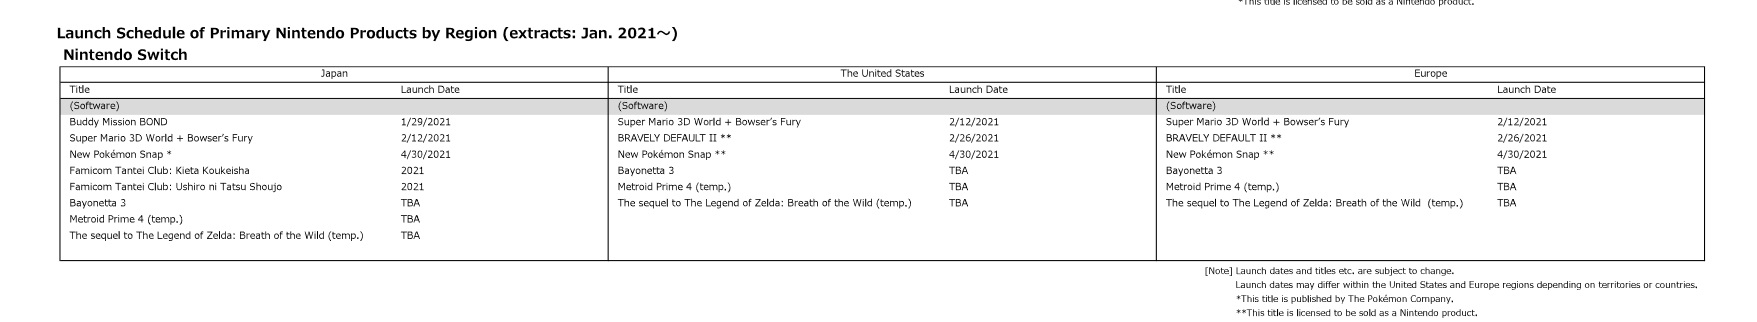 Nintendo's 2021 schedule of releases currently has Metroid Prime 4 and The Legend of Zelda: Breath of the Wild 2 on target for 2021.